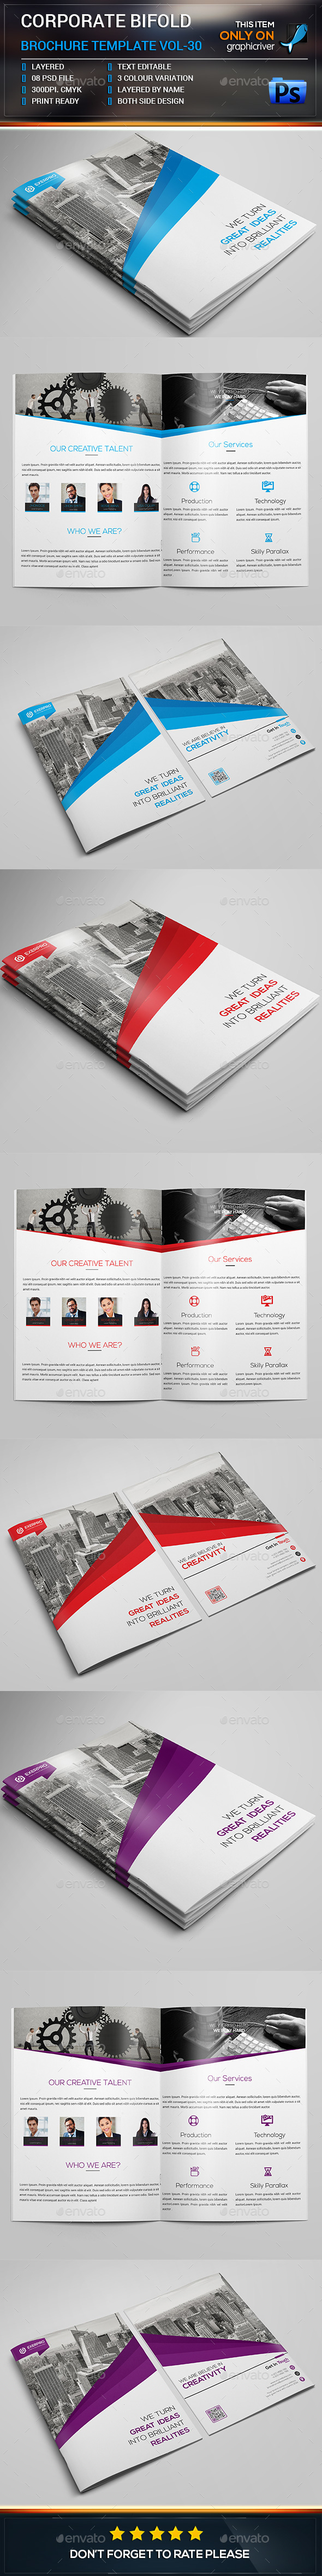 Corporate Bifold Brochure Template  - Brochures Print Templates